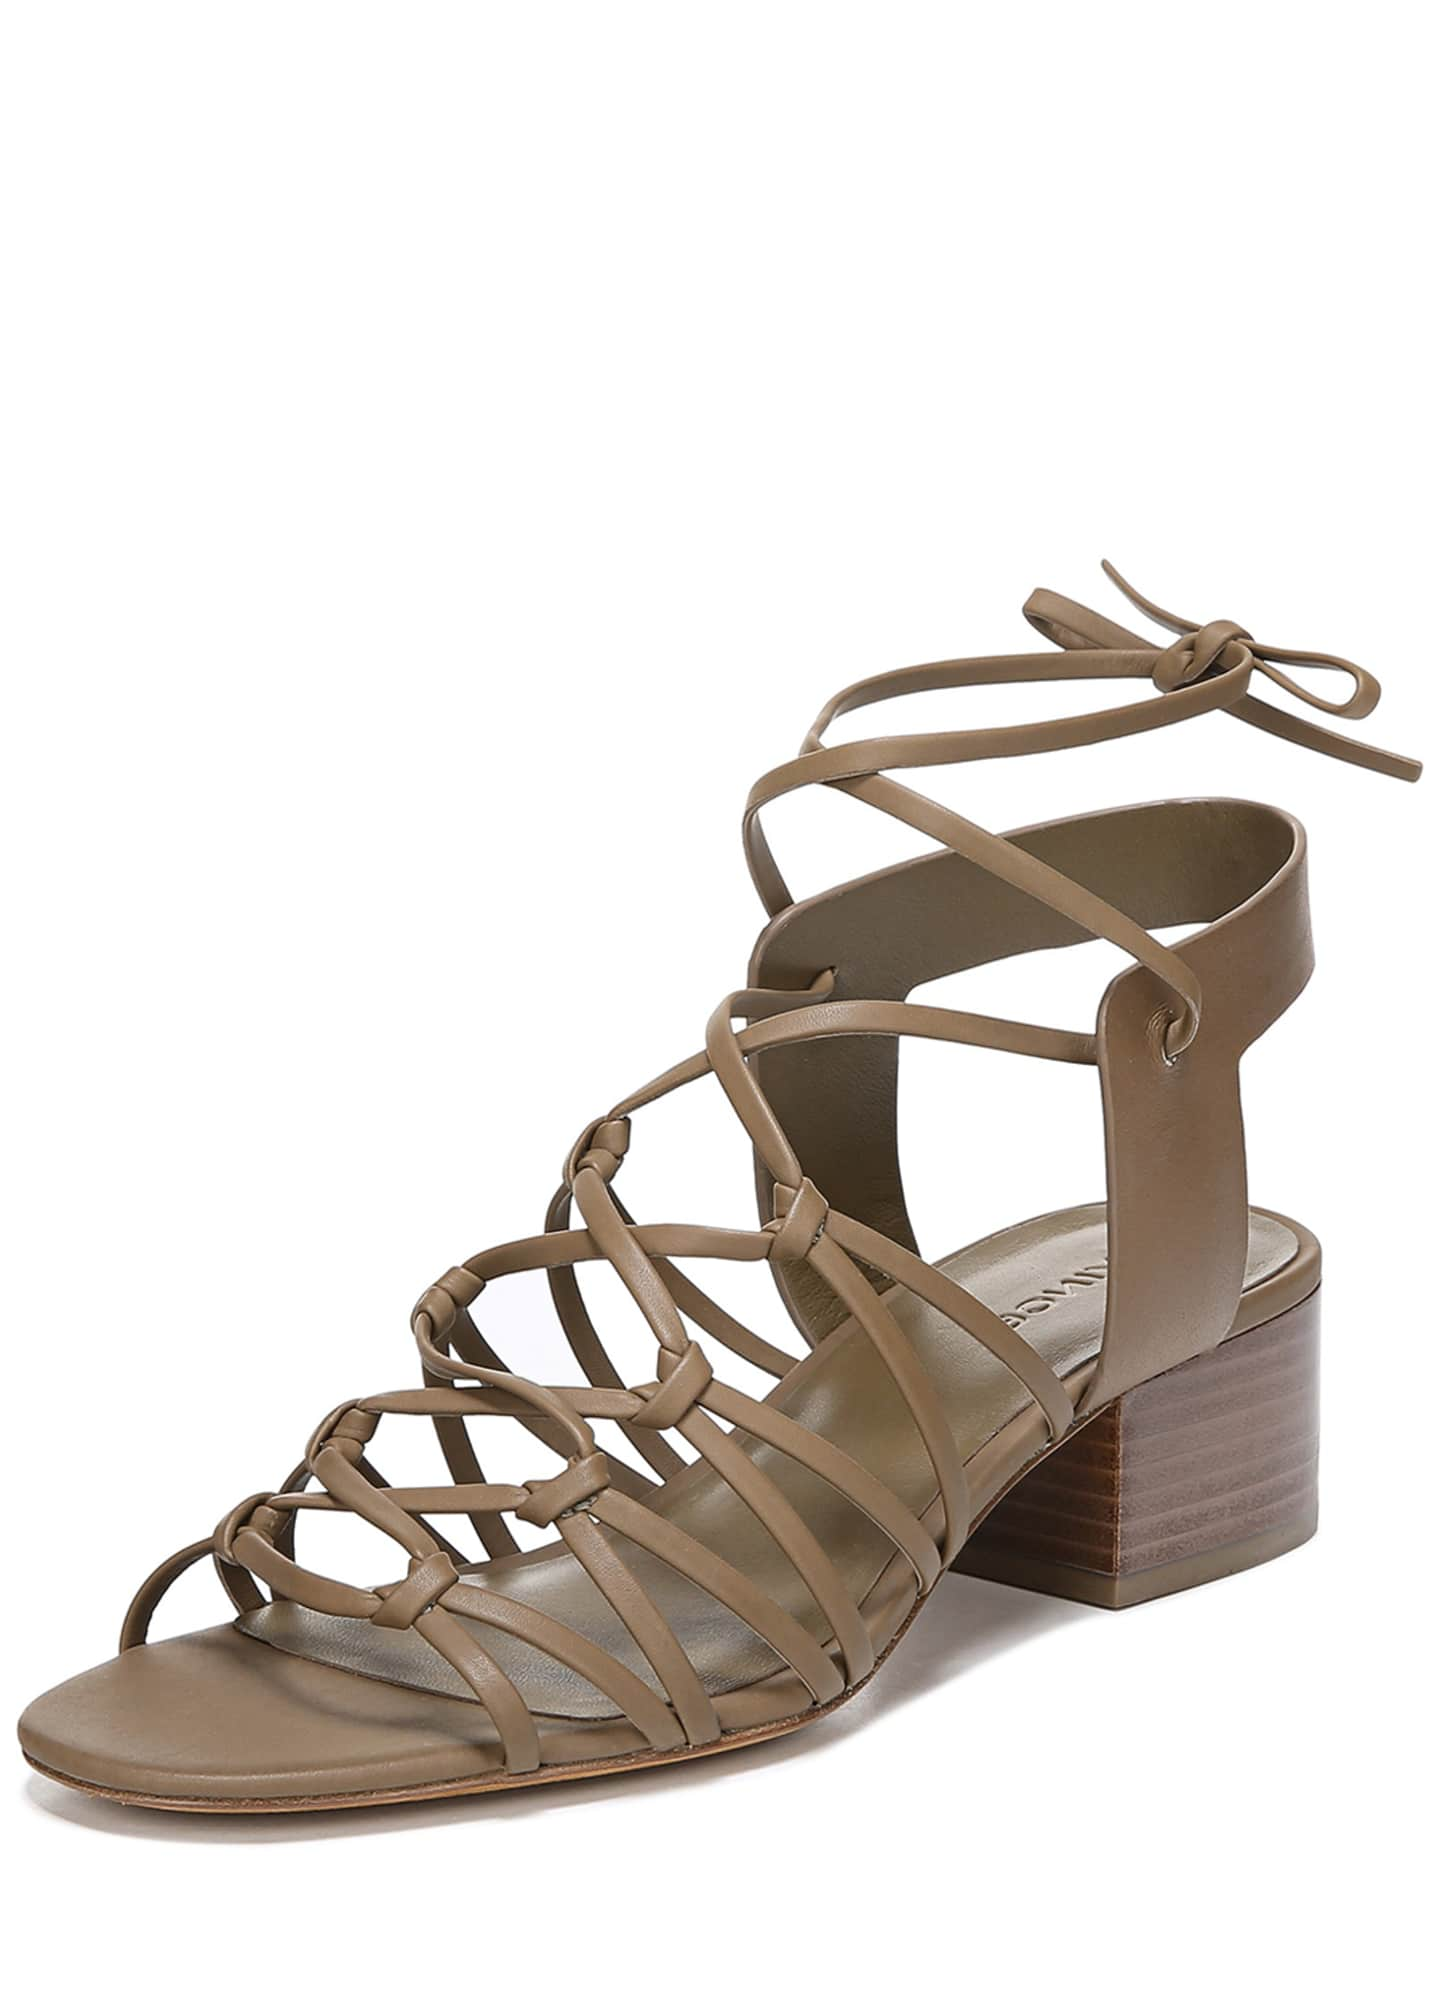 Vince Beaumont Knotted Leather Gladiator Sandals